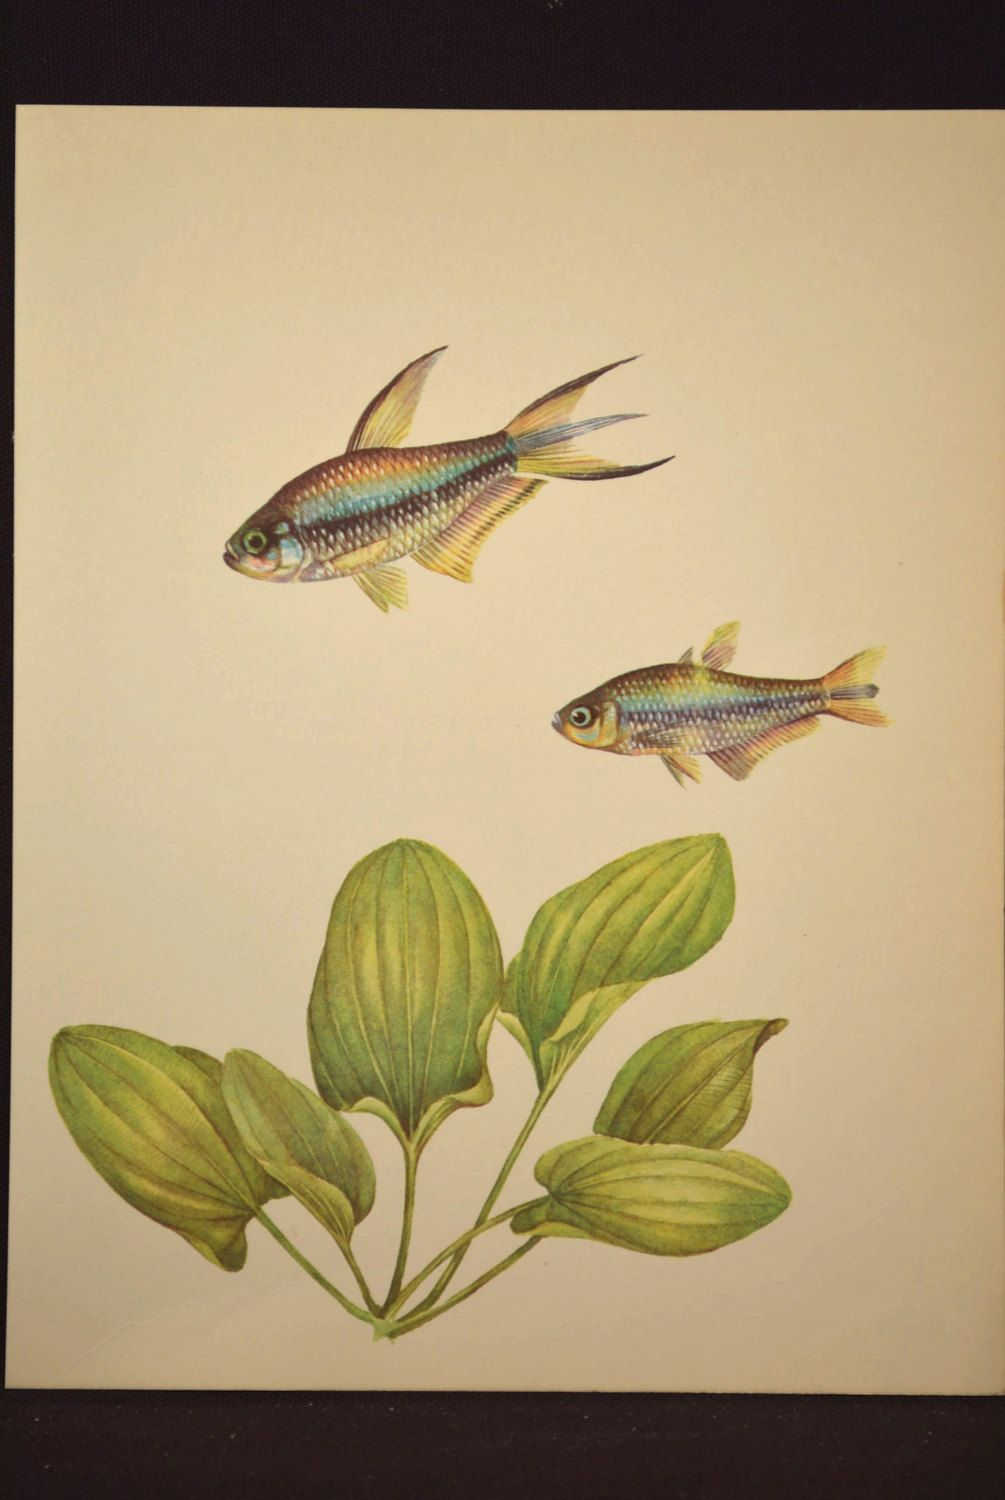 Aquarium Fish Art Wall Decor Tropical Fish Print Aquatic Plant ...